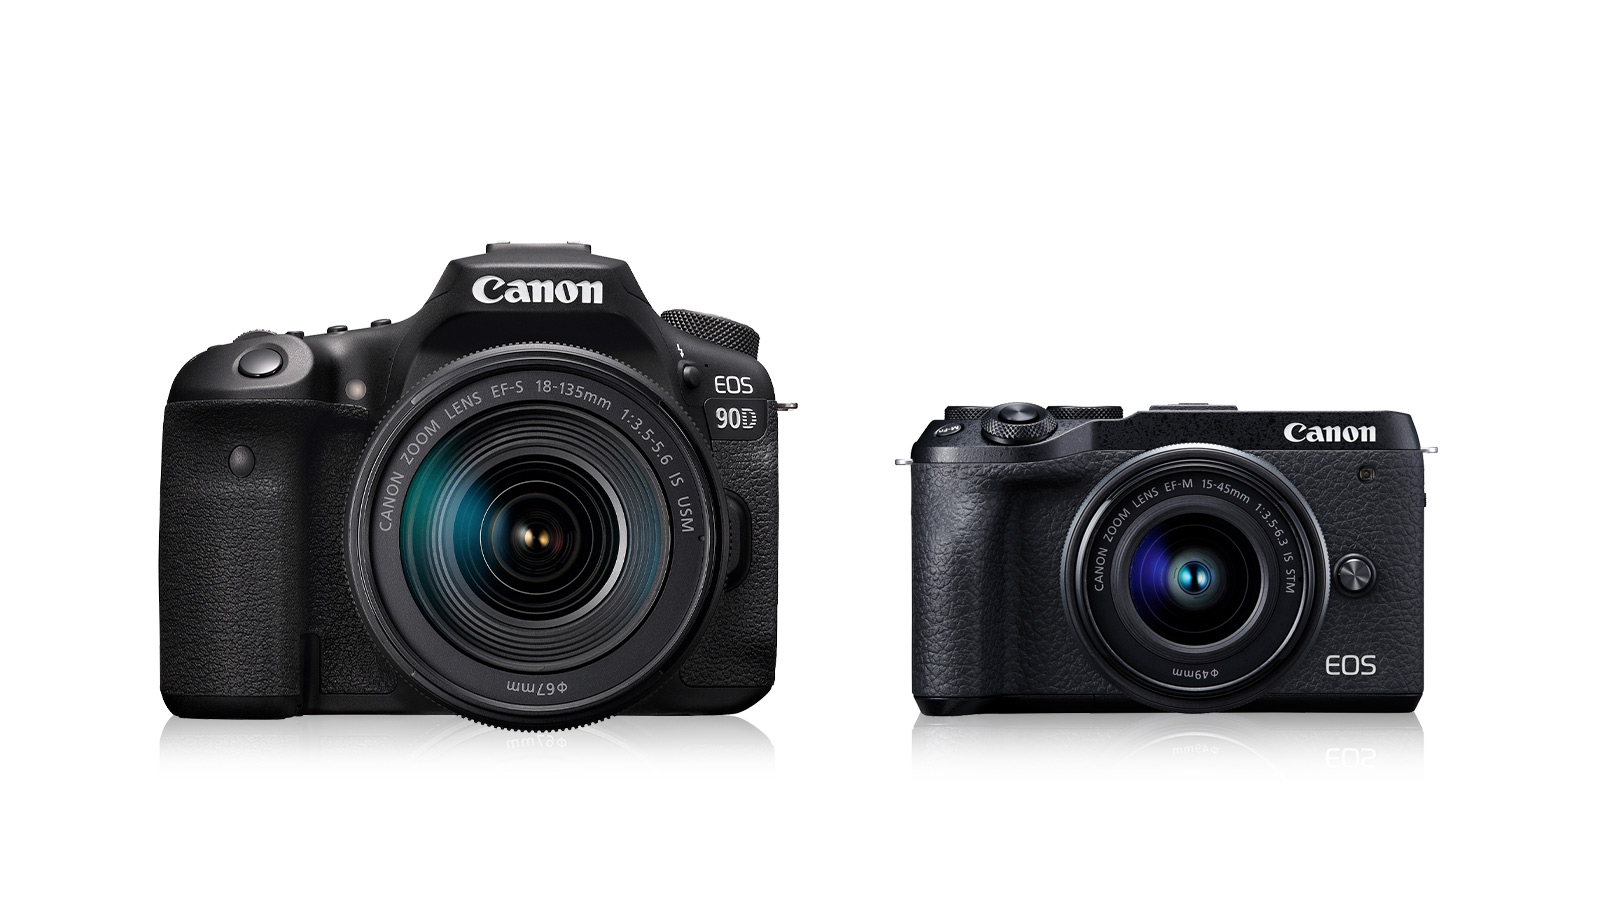 Canon Launches New APS-C Cameras: EOS 90D & EOS M6 Mark II